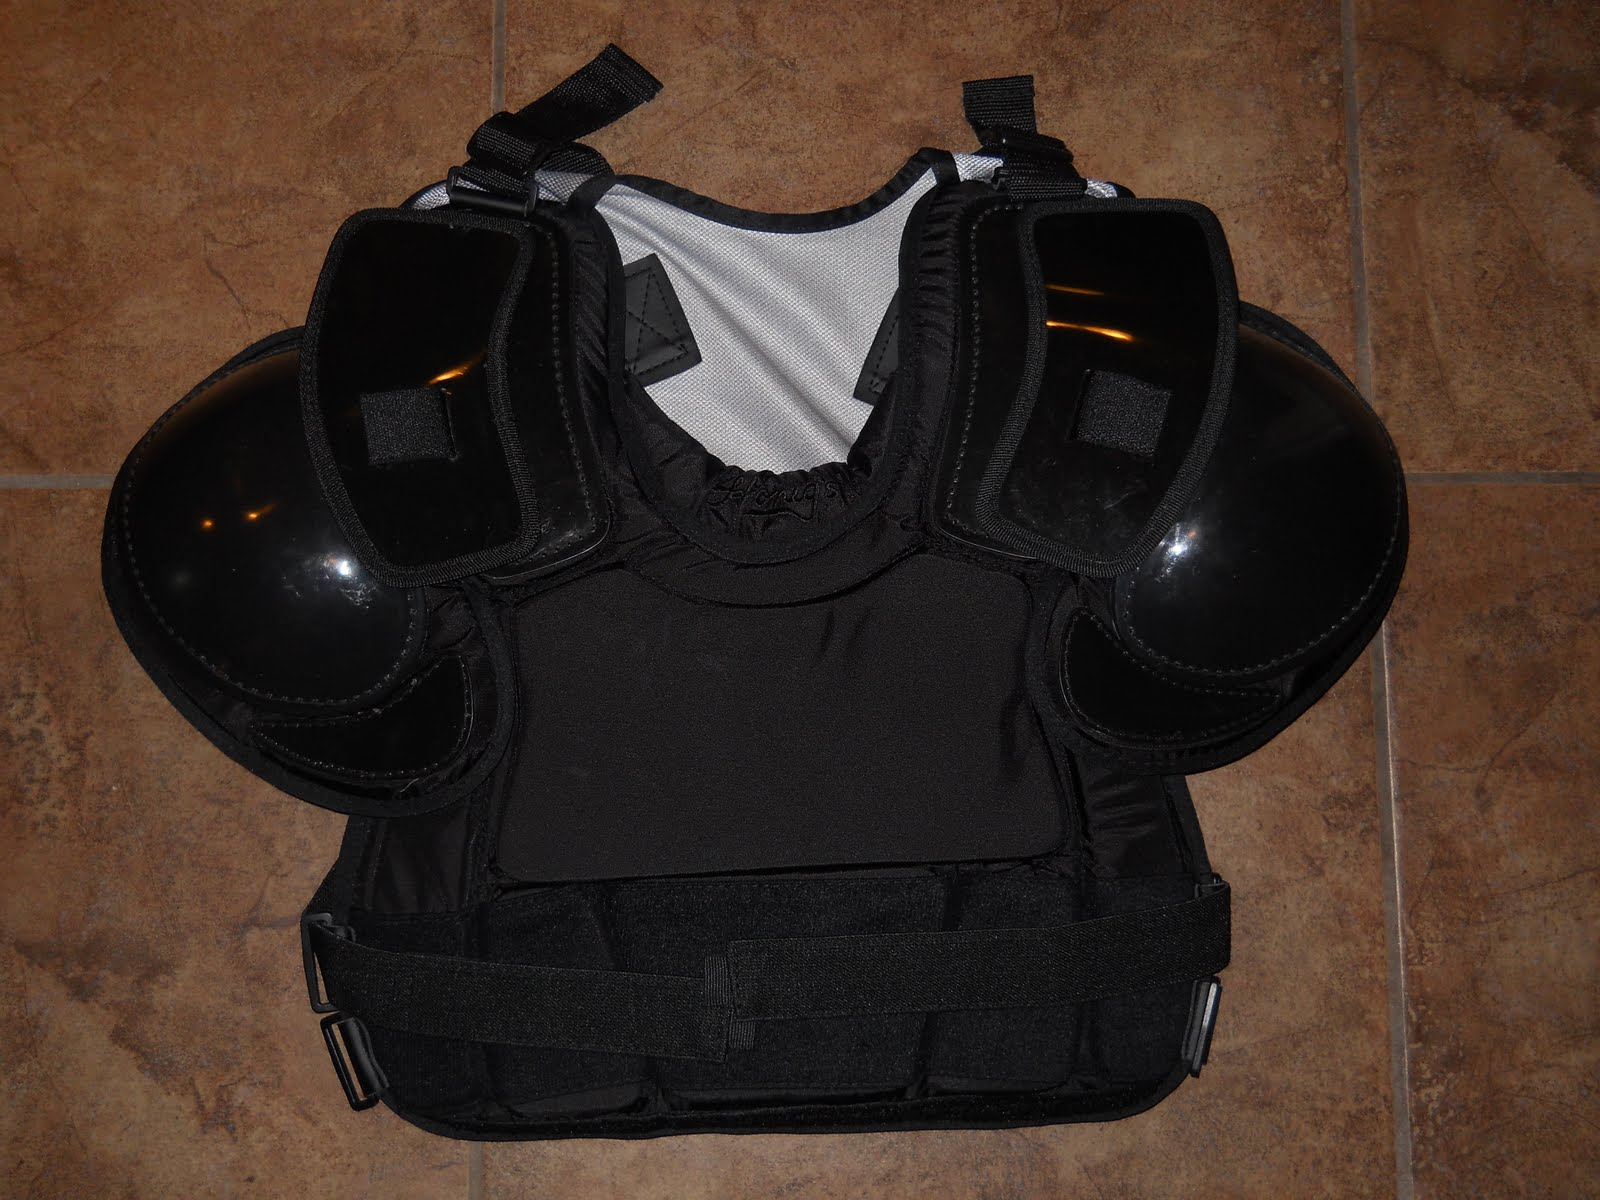 how to break in a chest protector